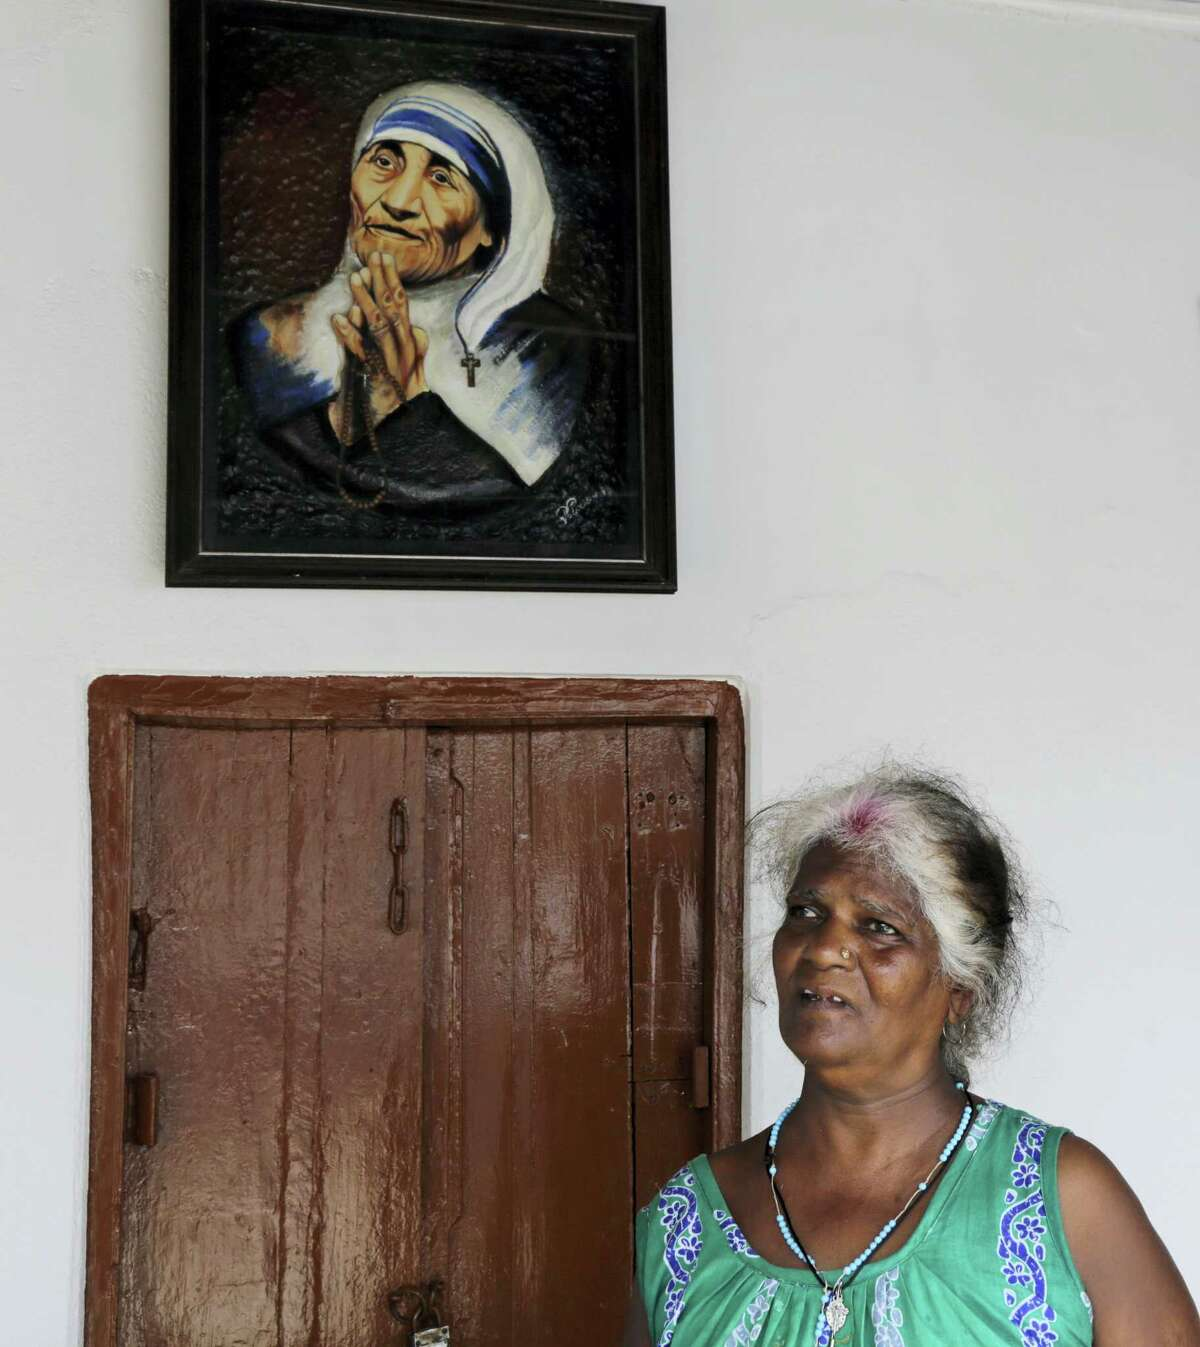 In this Aug. 28, 2016, photo, Bertha Mondal stands beside a portrait of Mother Teresa and speaks with the Associated Press in Kolkata, India. For Mondal, Mother Teresa is more than a saint. The 60-year-old grew up at an orphanage run by the Missionaries of Charity. Now she works as a caretaker at the home.